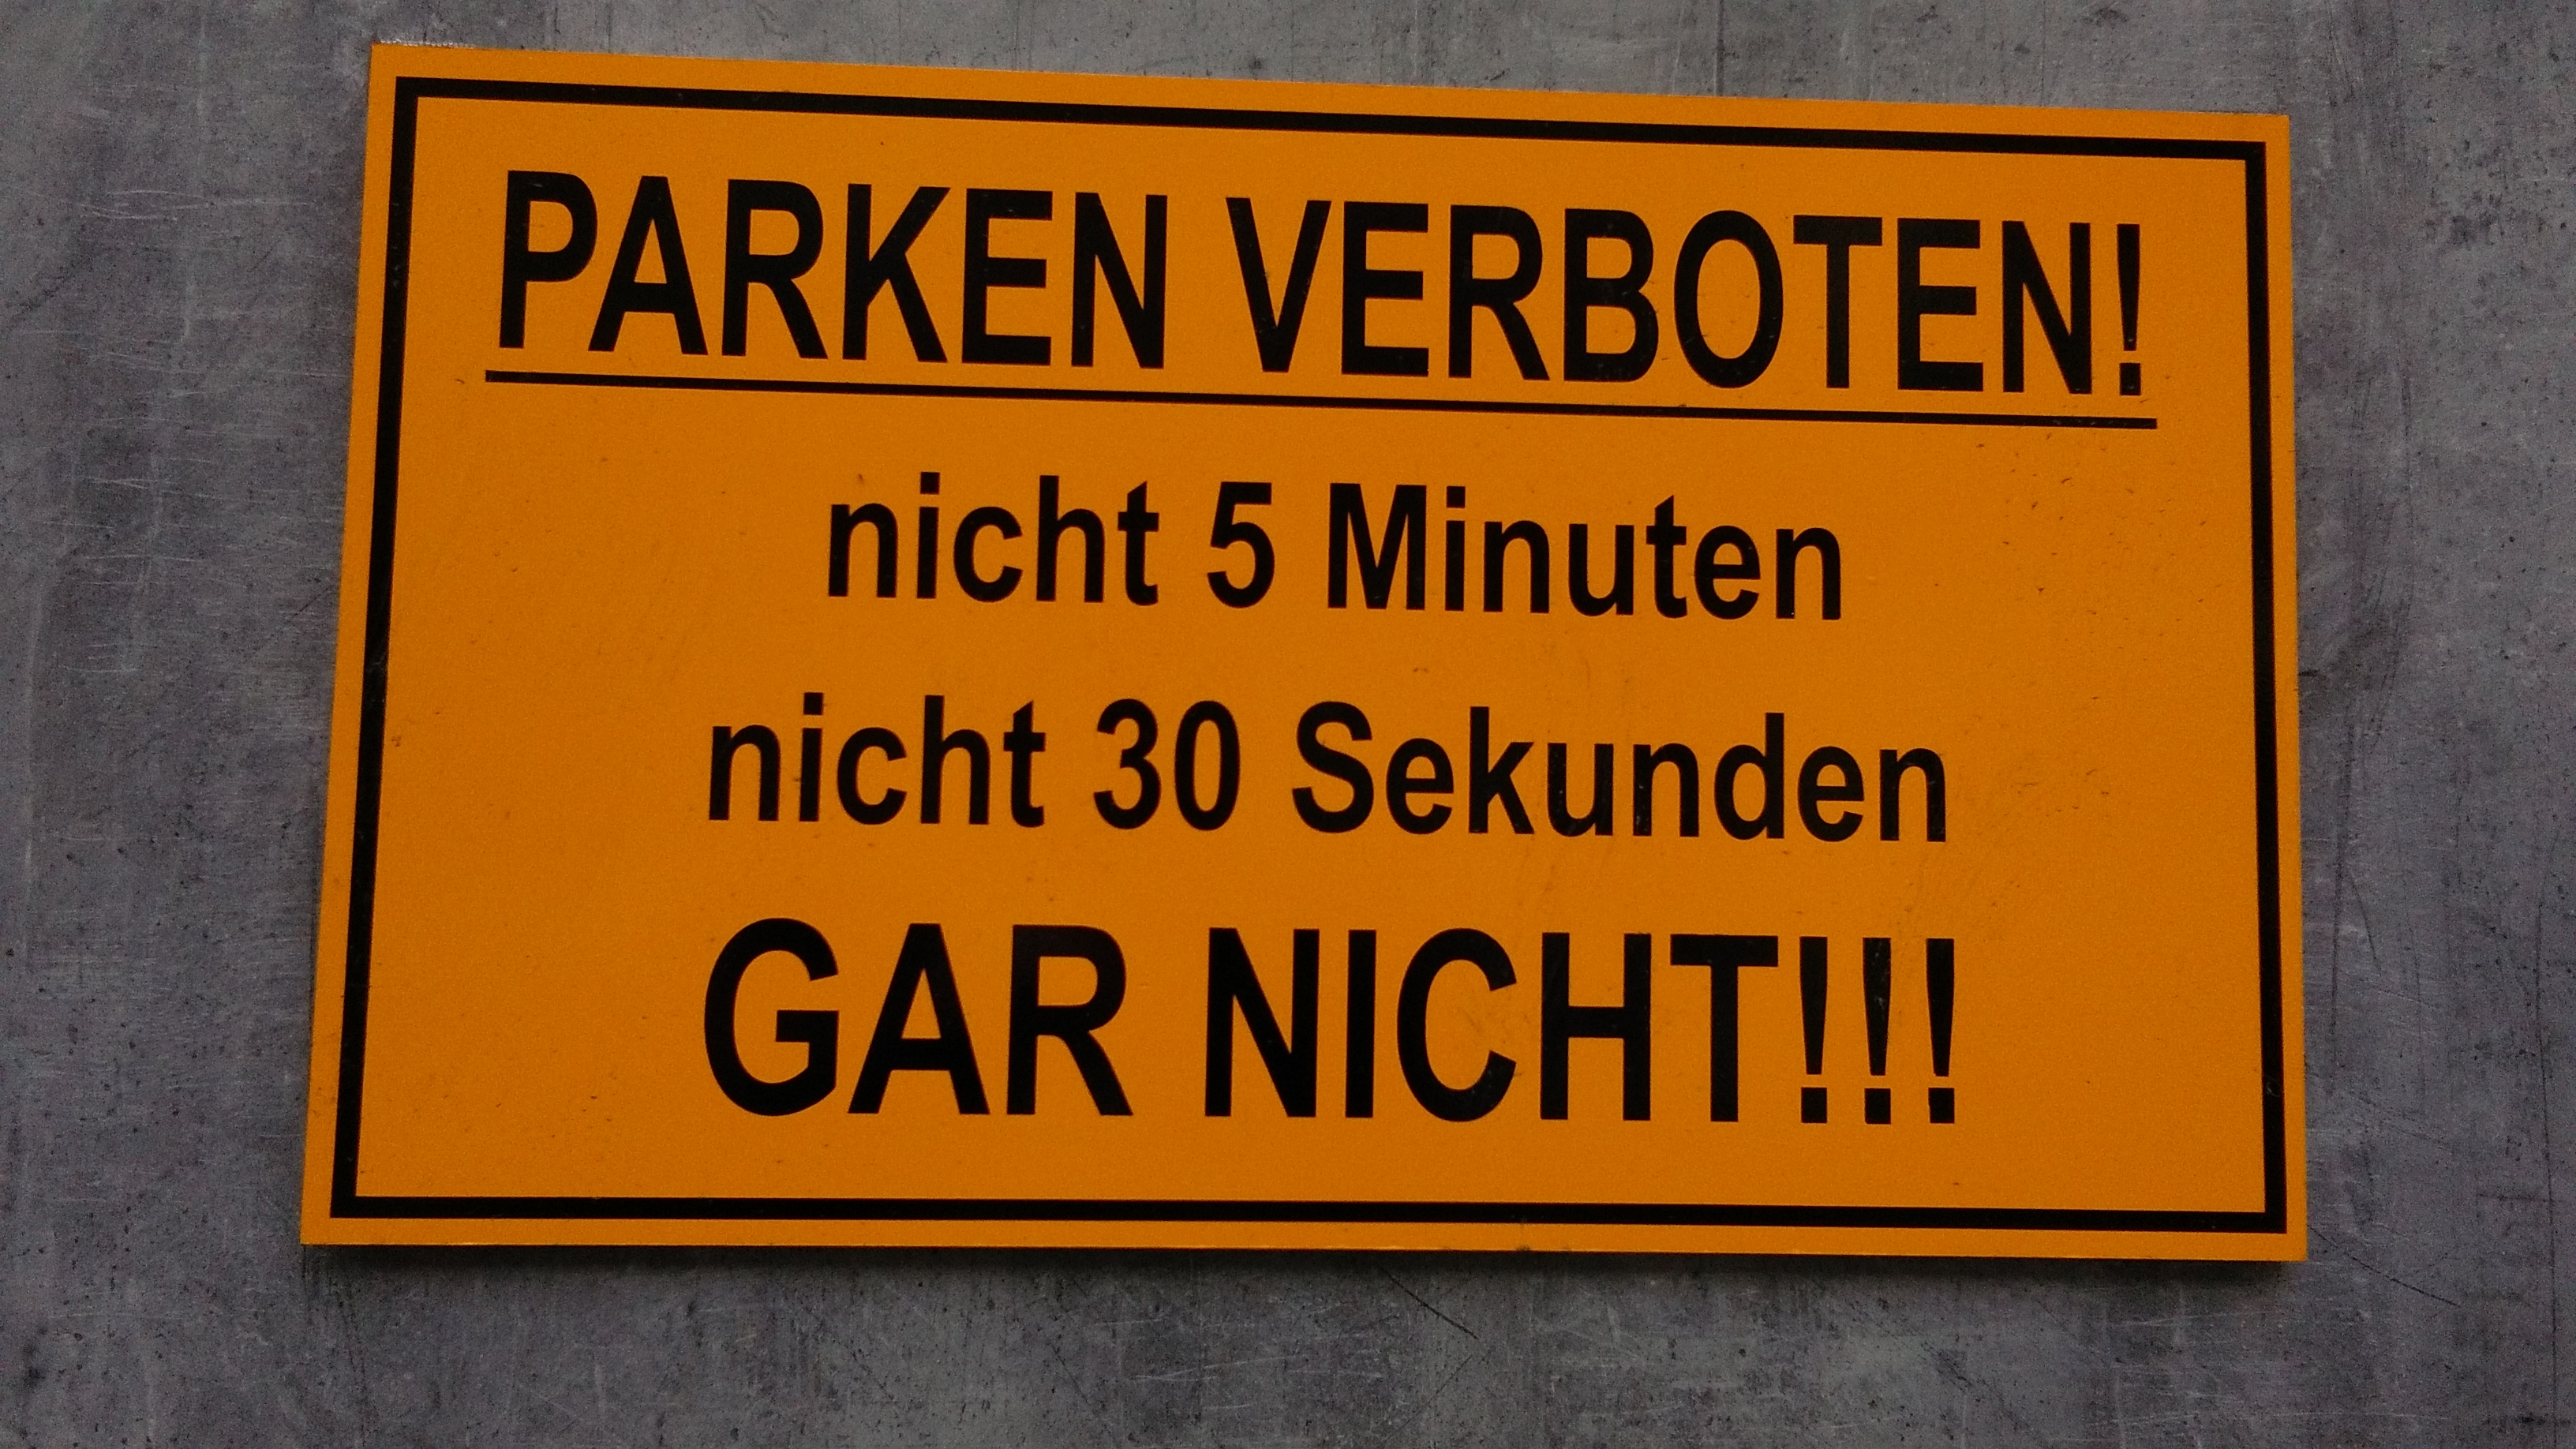 Parking Prohibited. Not 5 Minutes. Not 30 Seconds. NOT AT ALL!!!